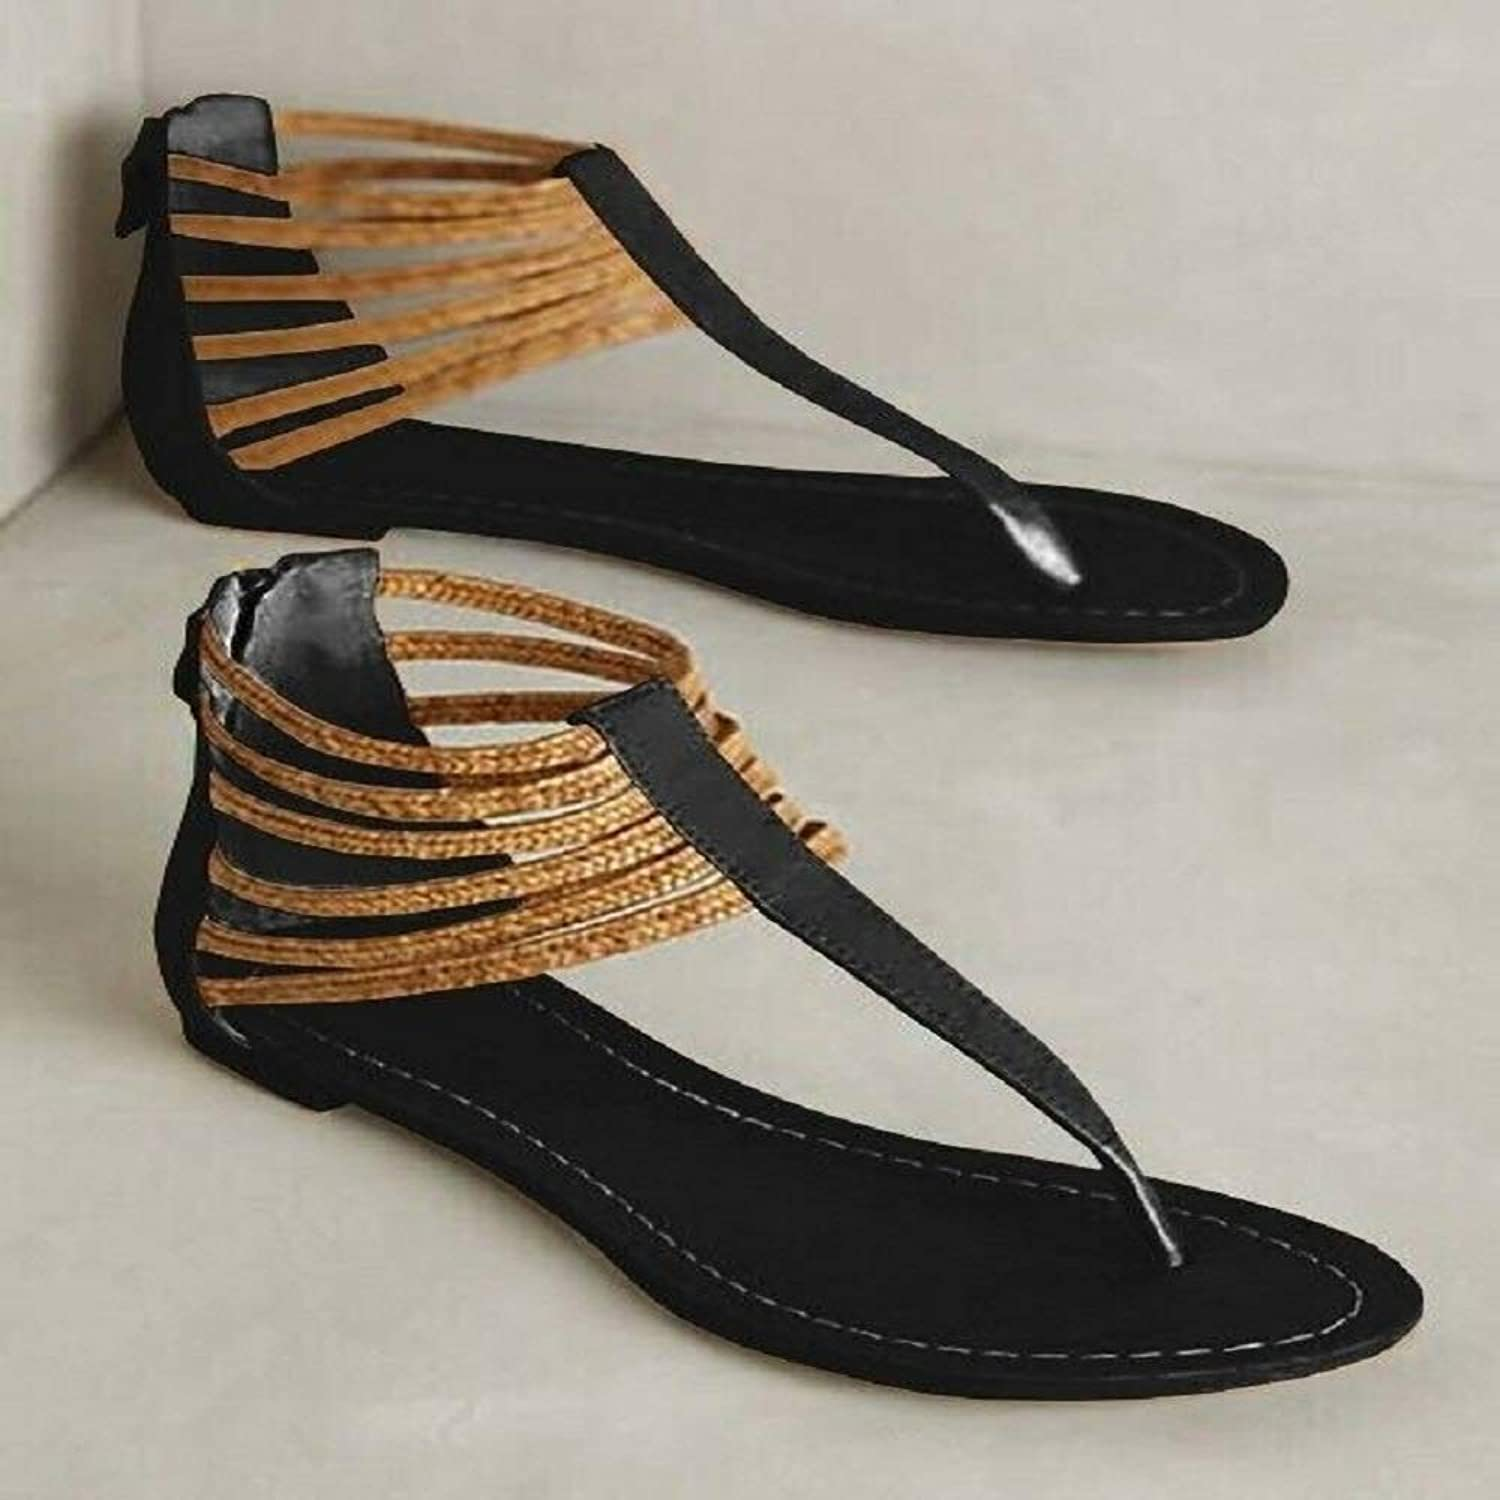 Tswsq Roman Sandals Lady's shoes Summer Beach Loafers Flip Flops Plus Size Flats New Black